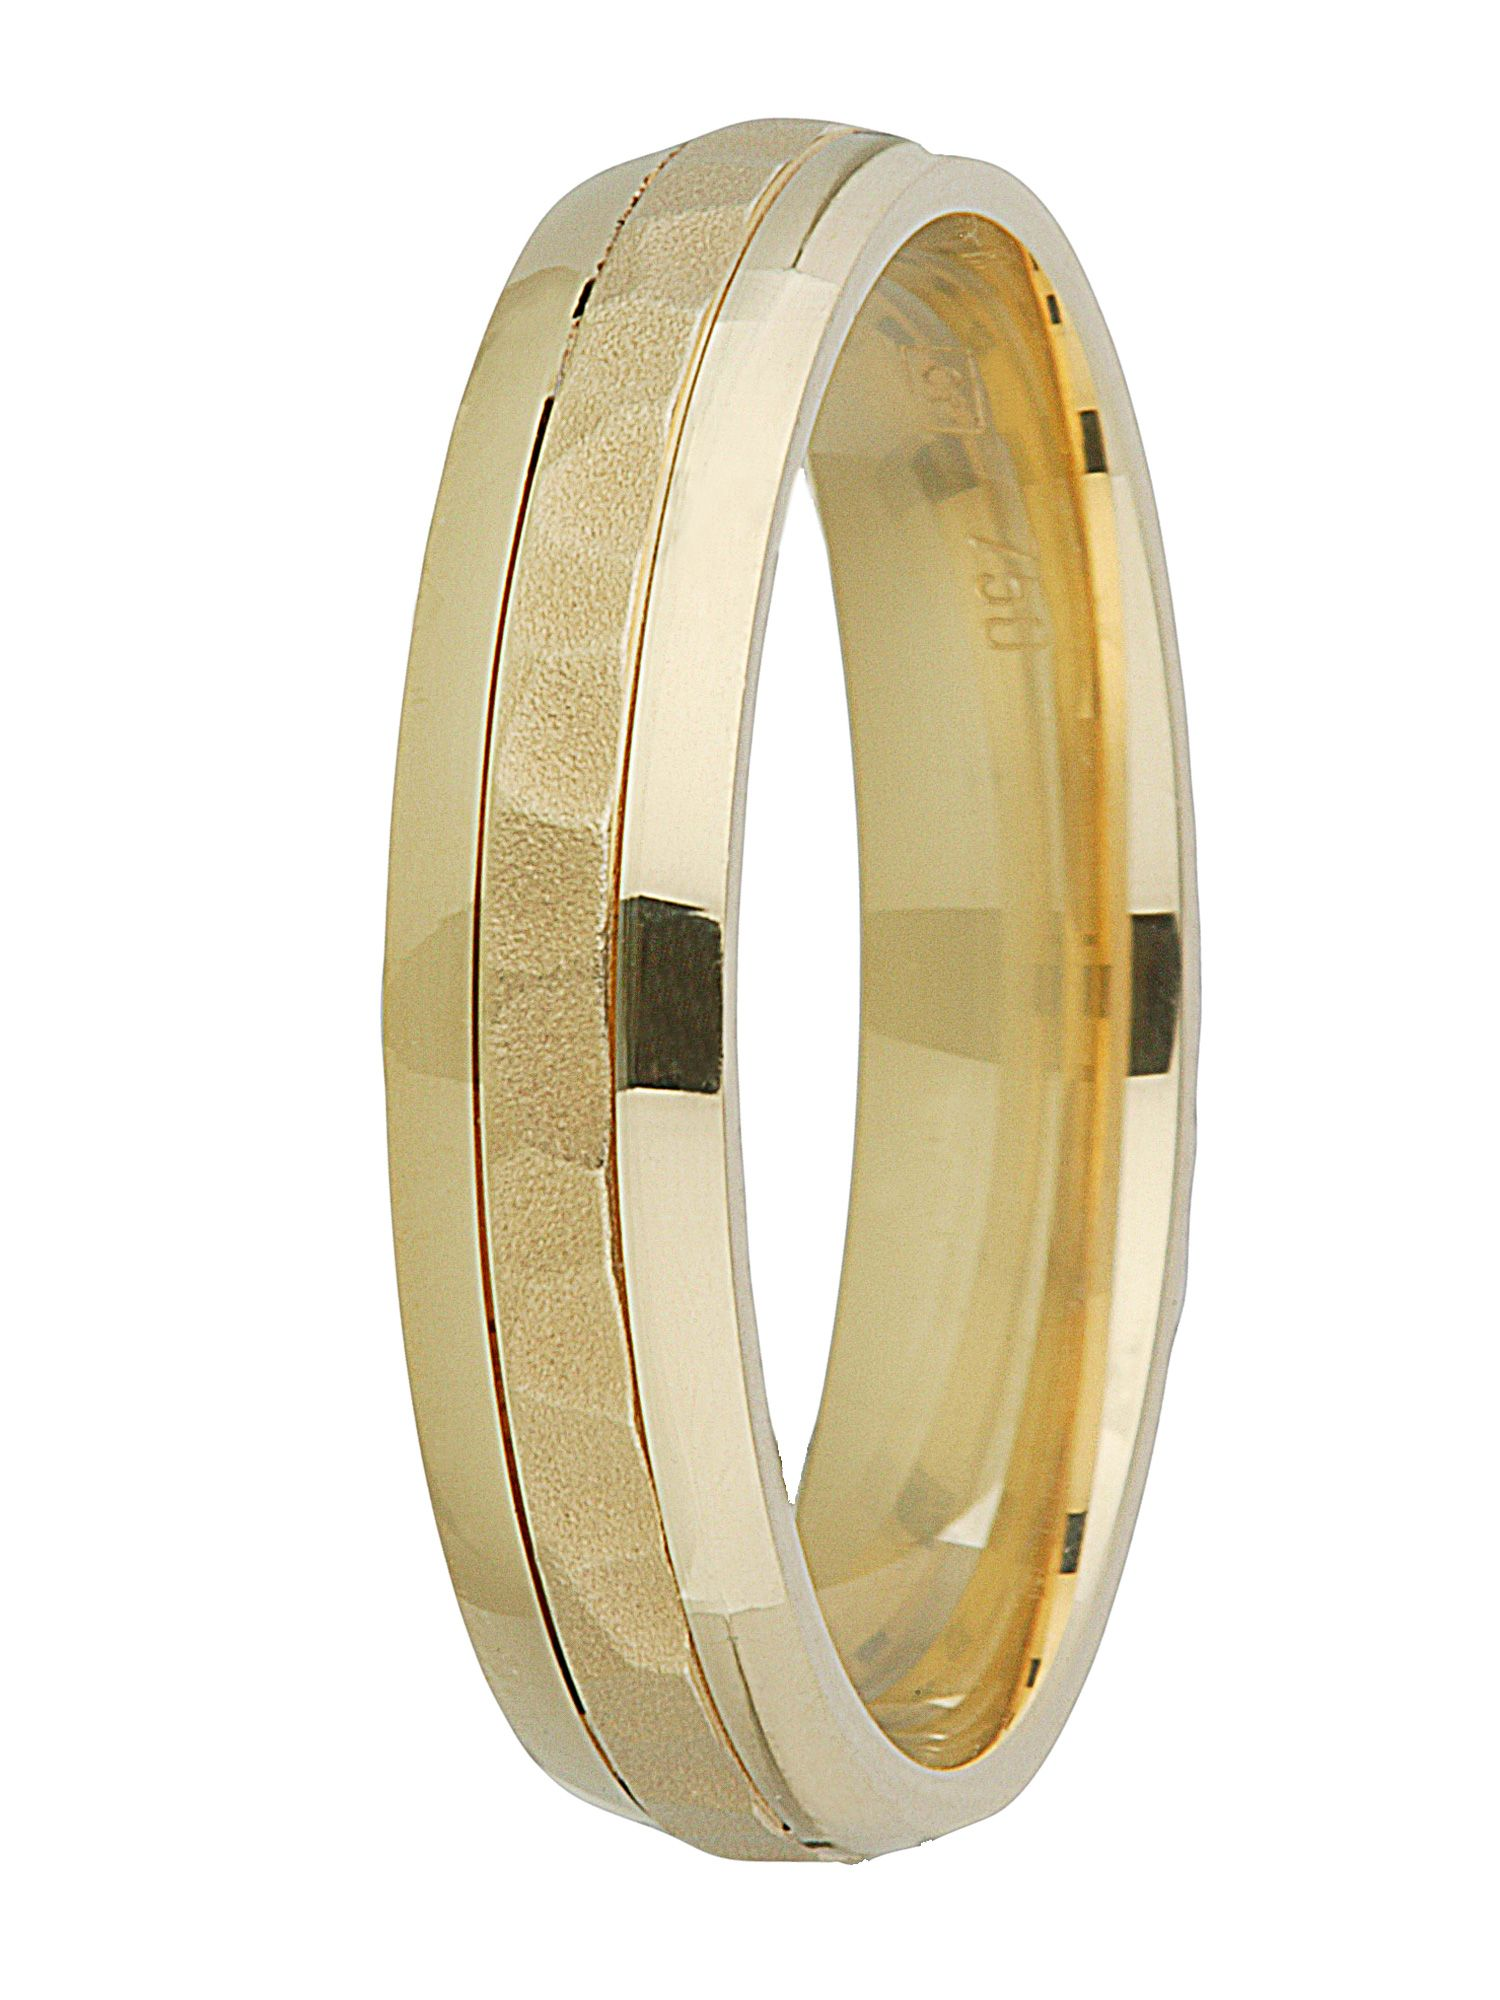 Ladies 18ct gold hammered finish wedding band